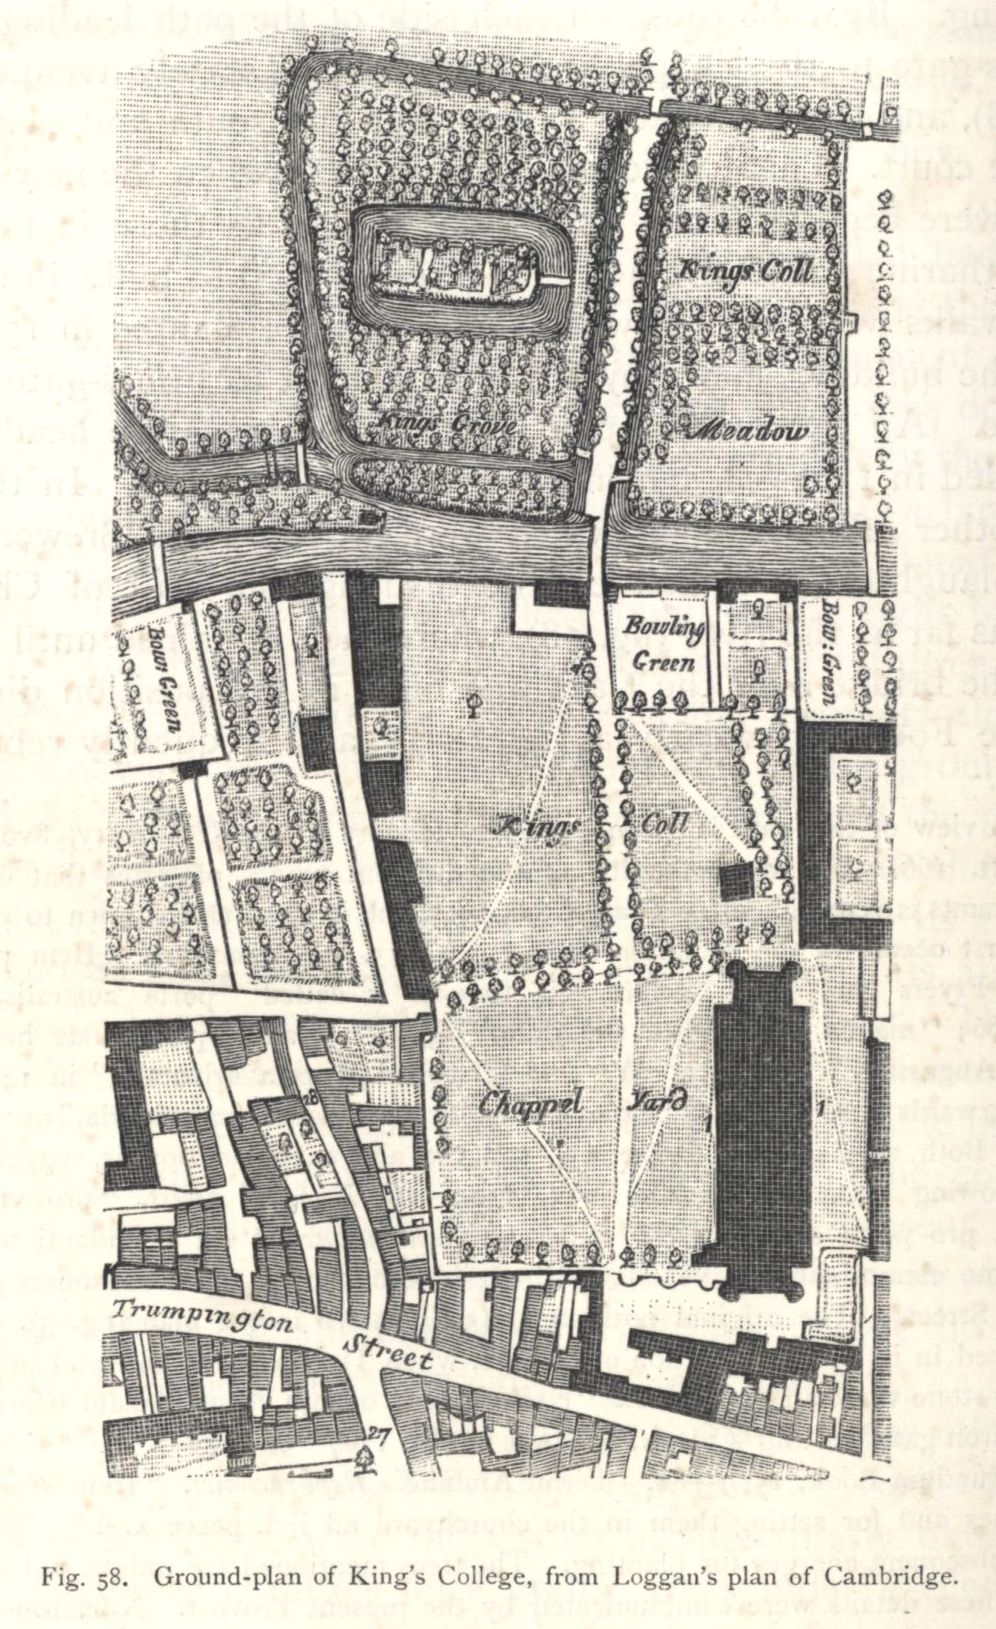 Ground plan of King's College, from Loggan's plan of Cambridge. [Willis and Clark, vol. 1, p. 568, fig. 58].